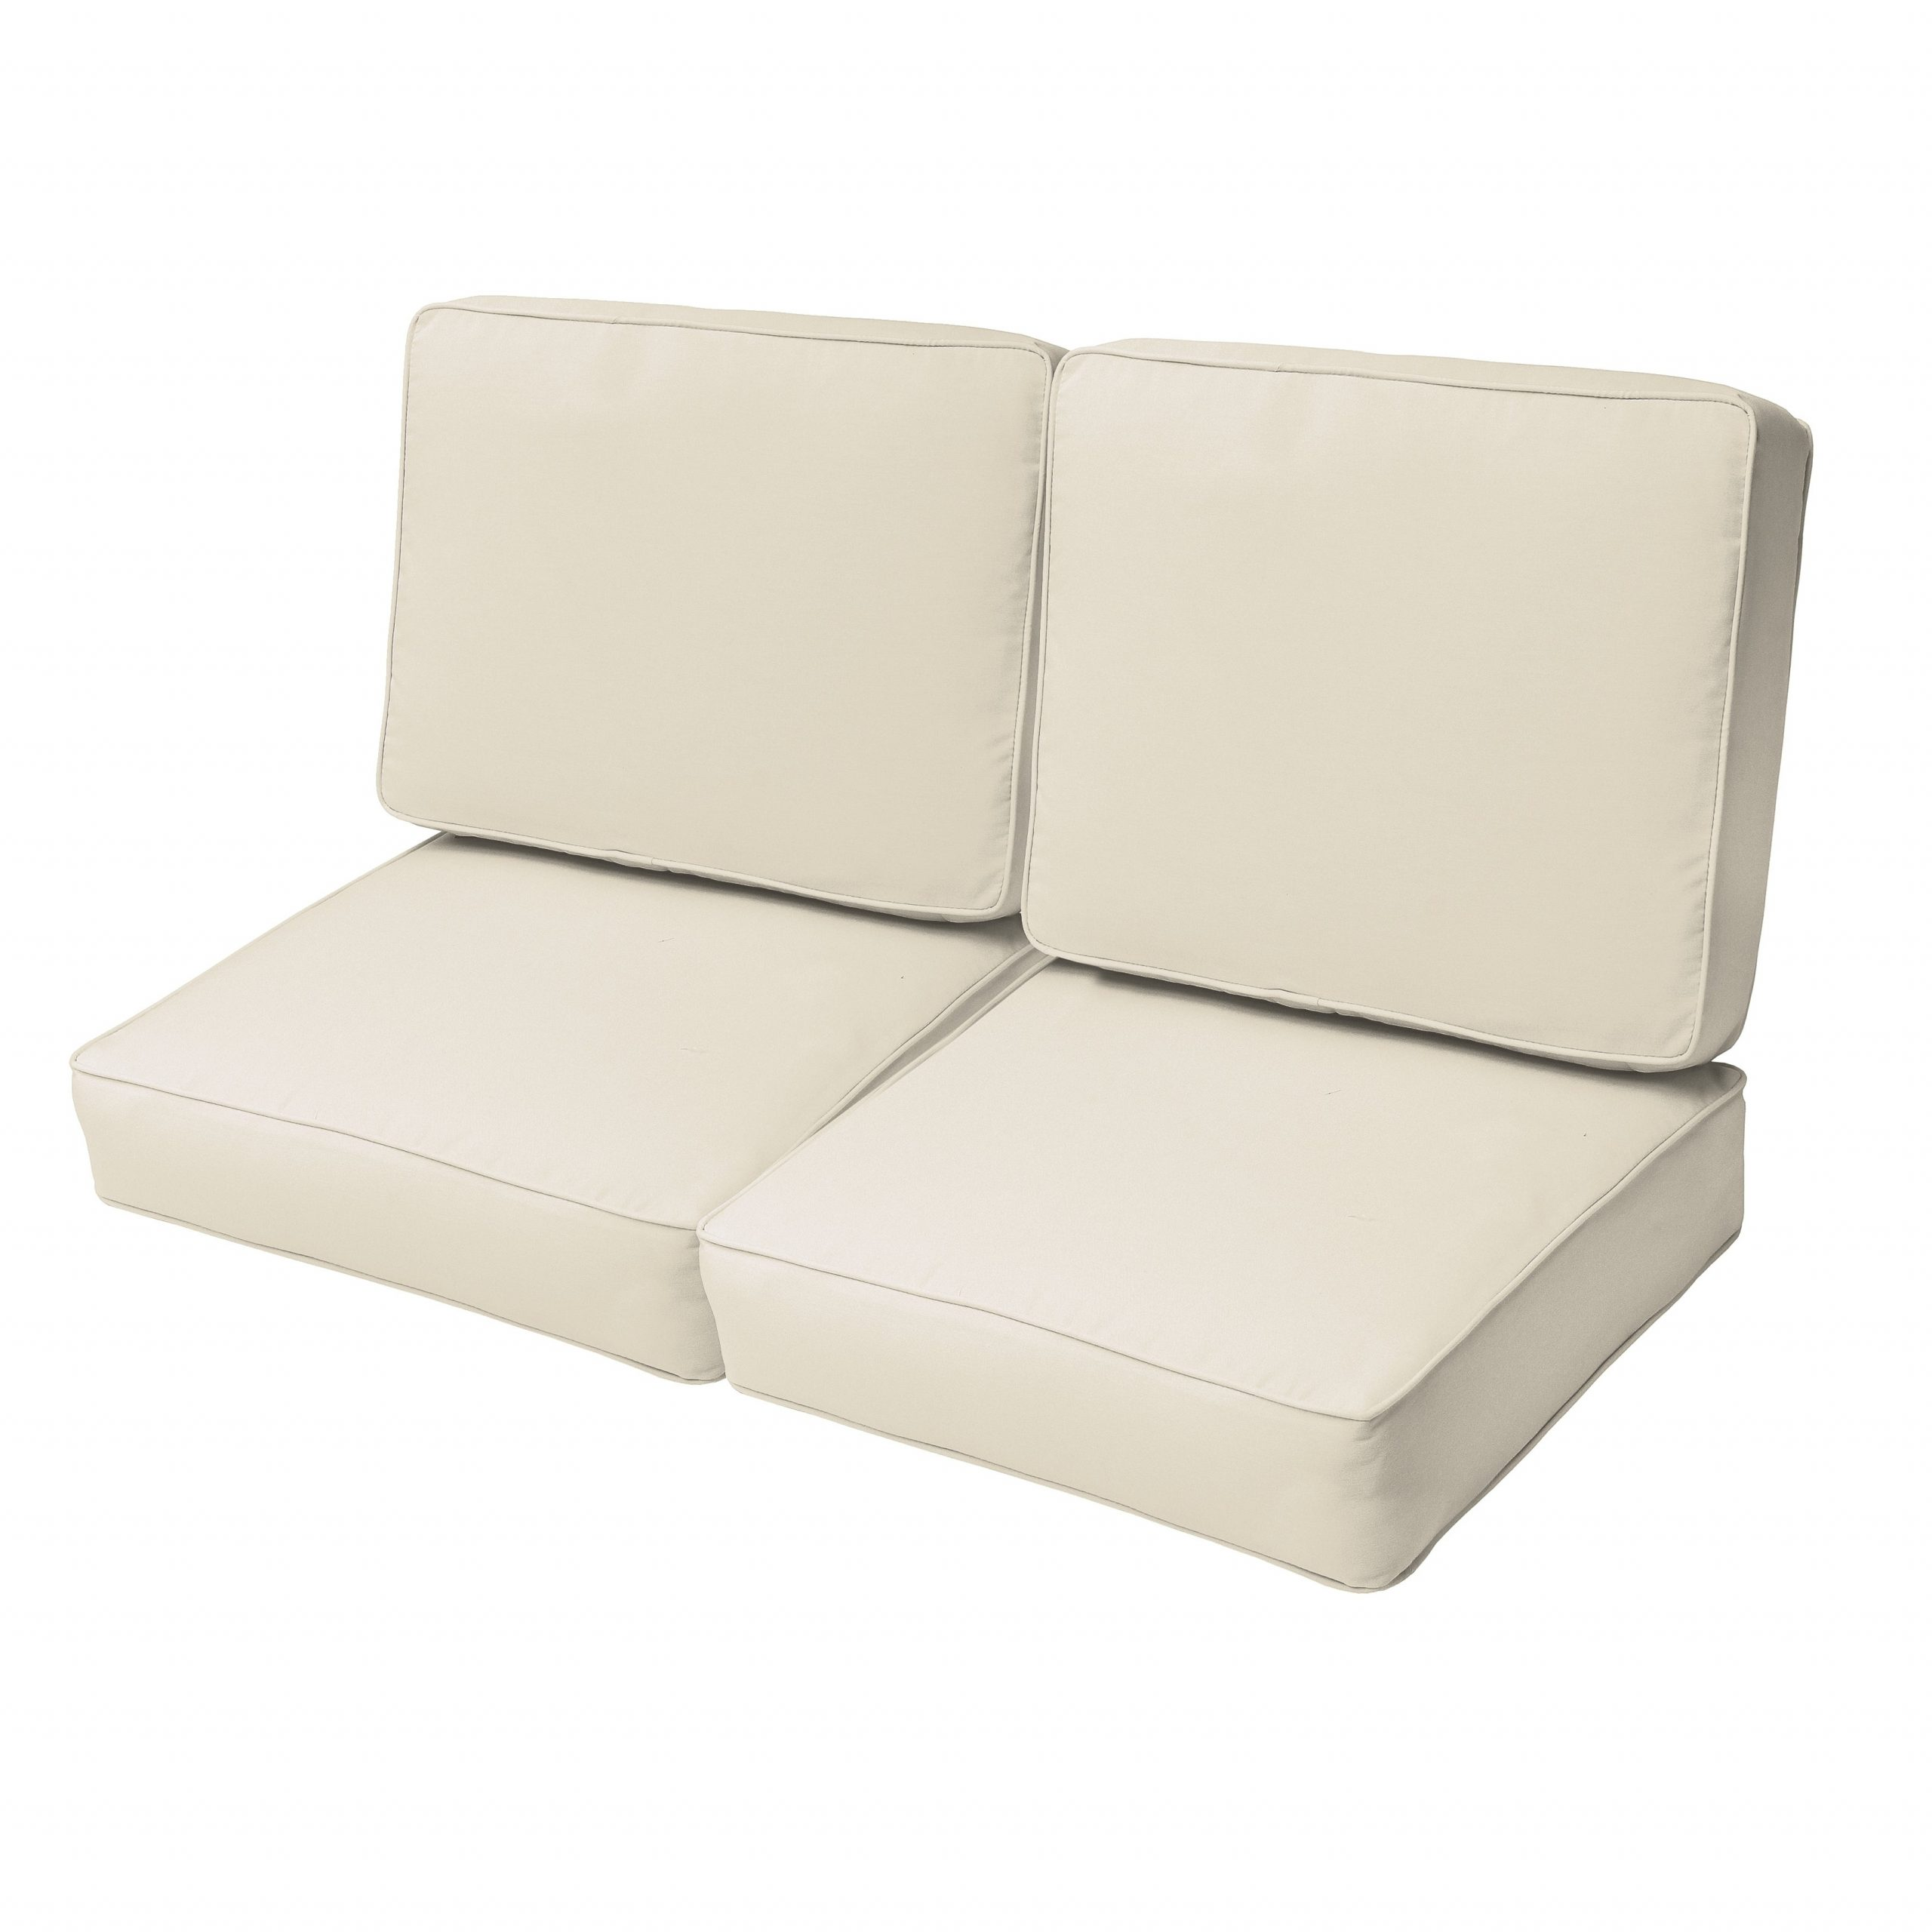 Loveseats With Sunbrella Cushions Pertaining To Favorite Sloane Ivory 47 Inch Indoor/ Outdoor Corded Loveseat Cushion Set (Gallery 19 of 25)